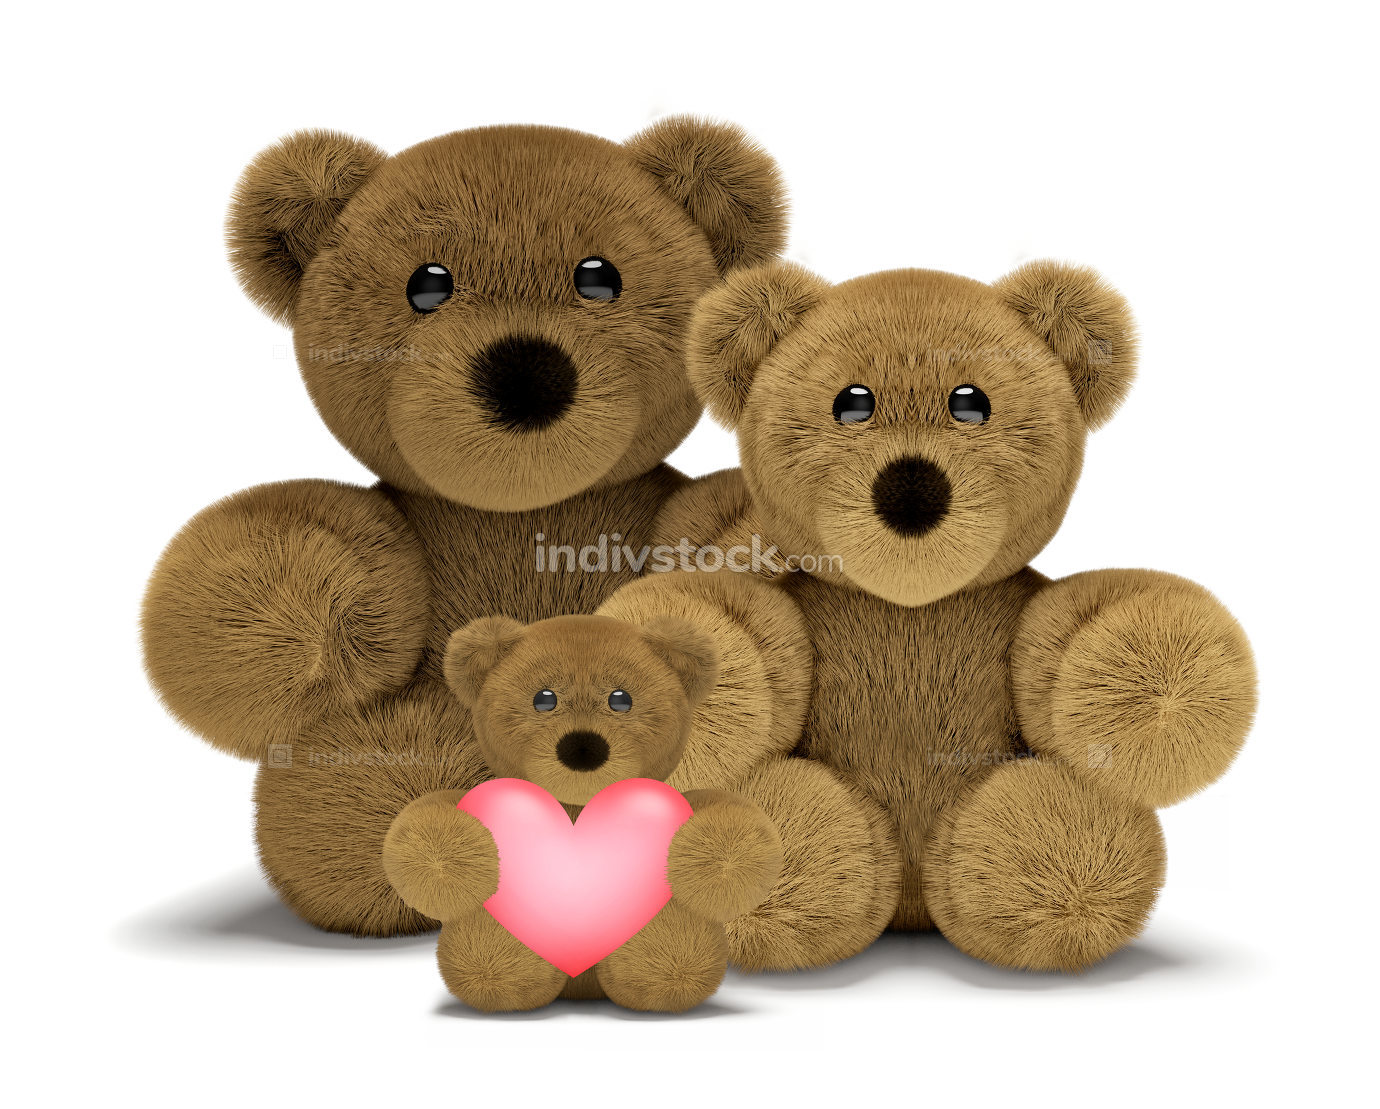 cute teddy bear family with mum, dad and child 3d render